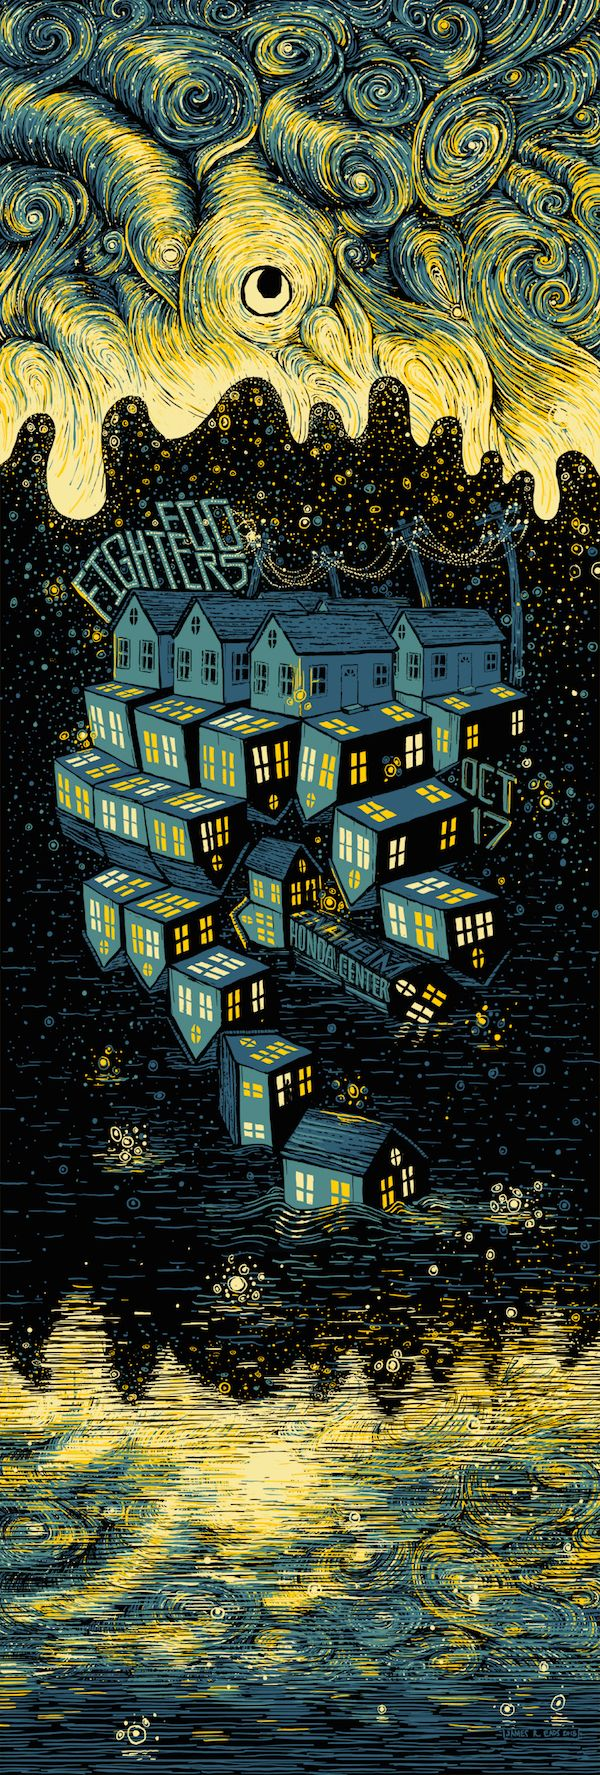 Foo Fighters - James Eads - 2015 ----